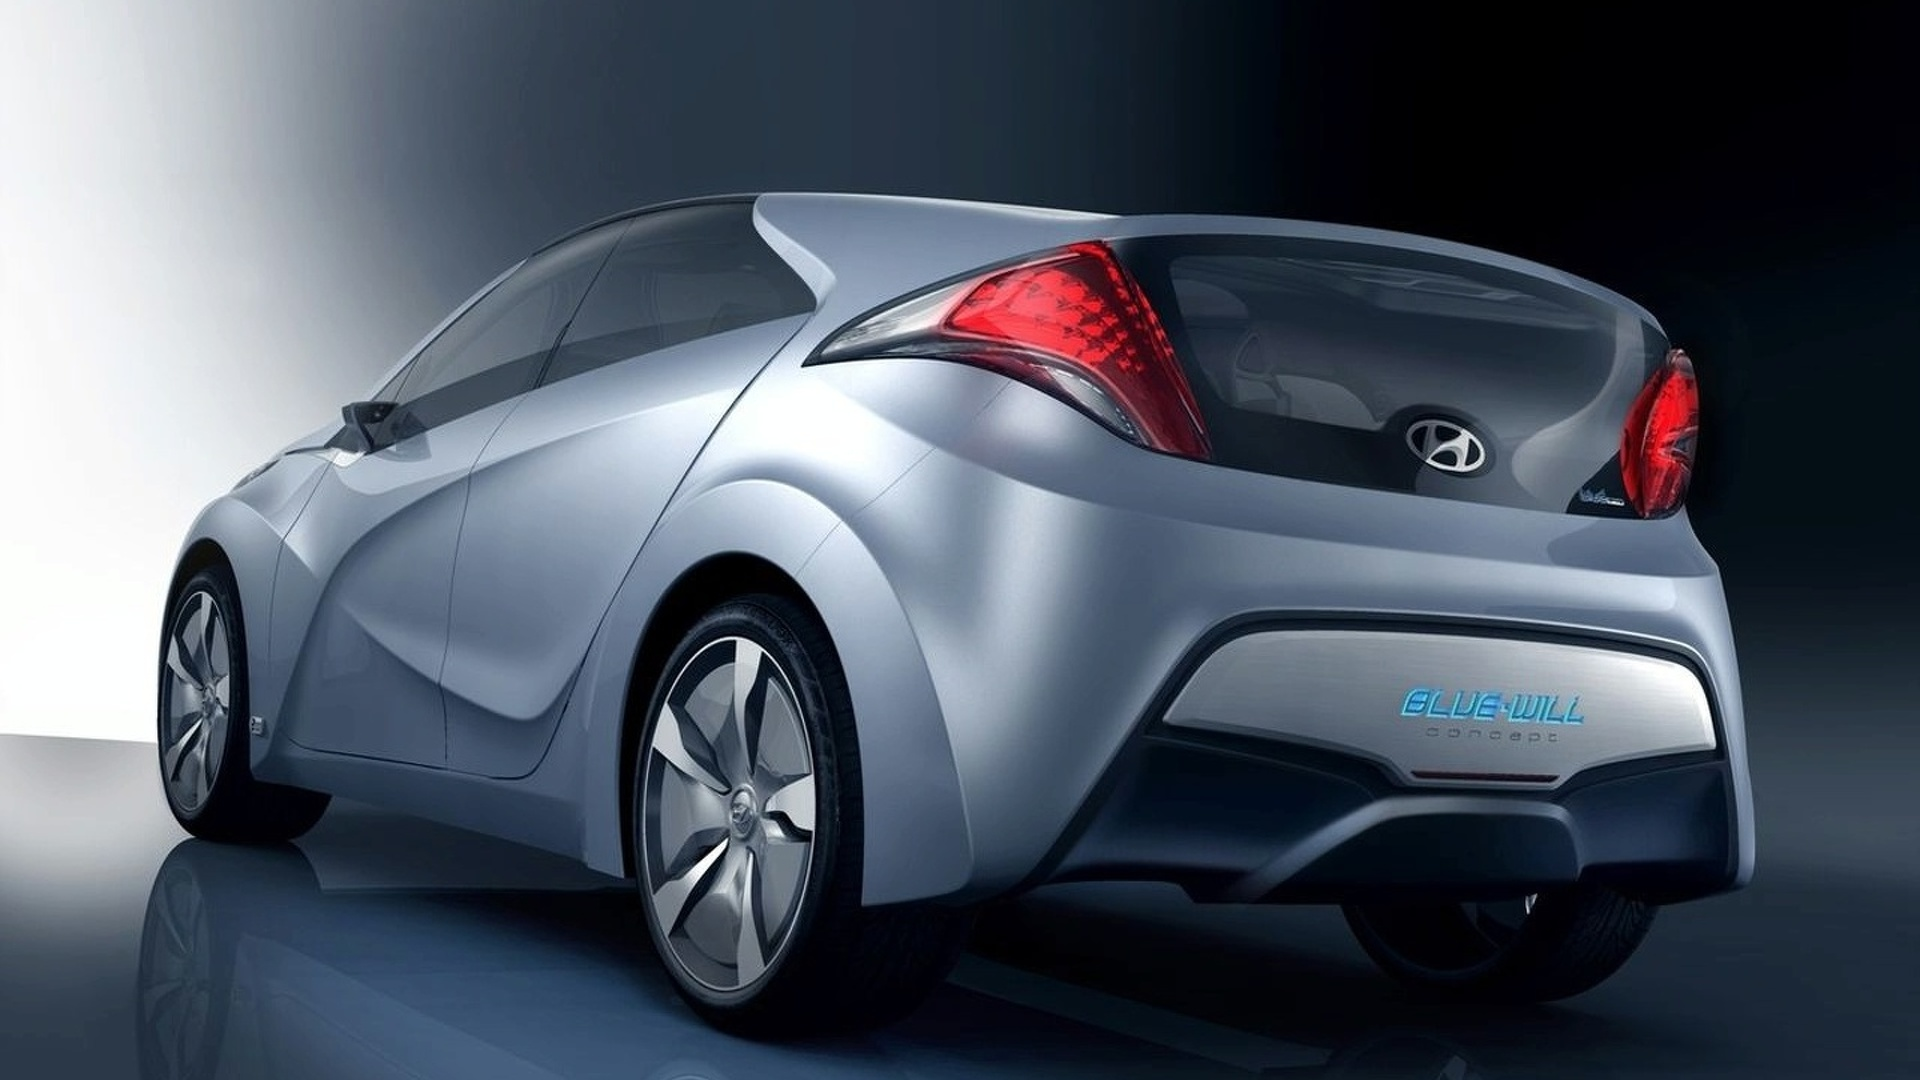 Hyundai Blue Will concept headed for production - report